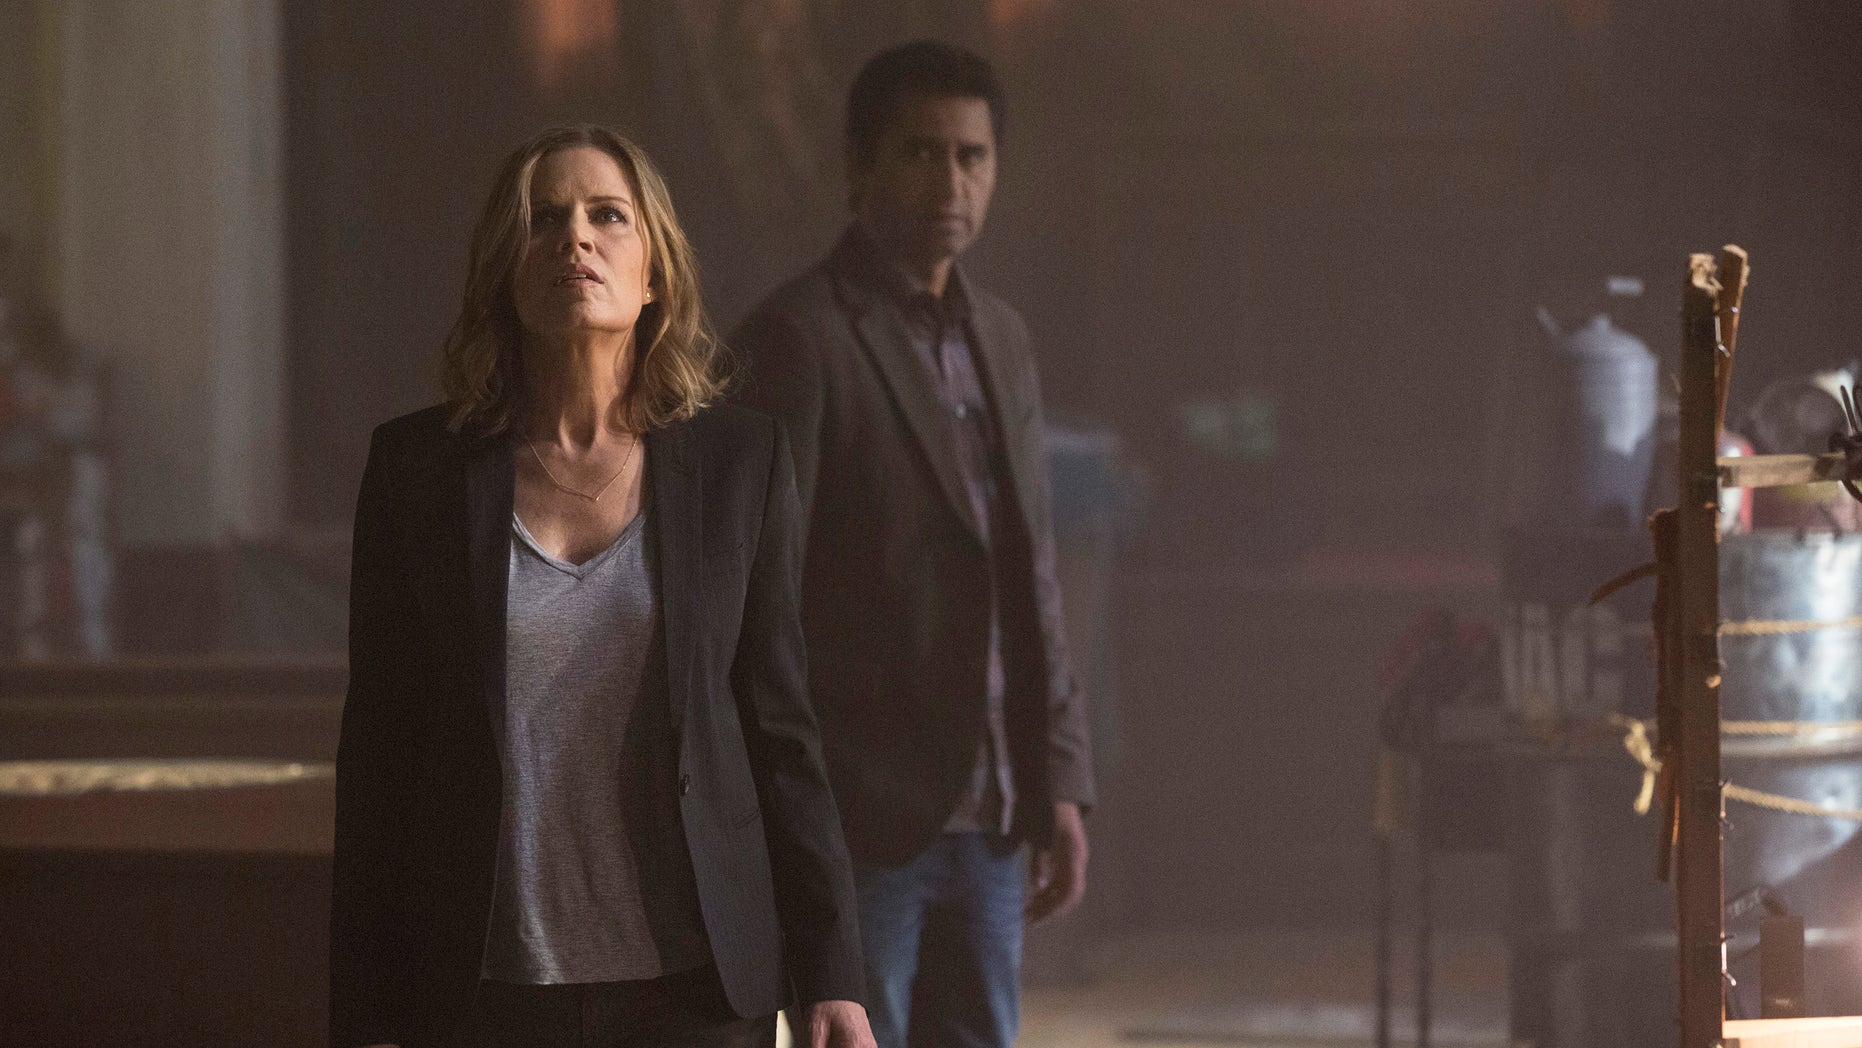 """CORRECTS CHARACTER NAMES, TO MADISON FROM MIRANDA, AND TO TRAVIS FROM SEAN, AND PHOTOGRAPHER TO FRANK OCKENFELS 3, FROM JUSTIN LUBIN  This photo provided by AMC shows, Kim Dickens, left, as Madison and Cliff Curtis as Travis in a scene from """"Fear the Walking Dead,"""" season 1. The series, a spinoff to AMCâs âThe Walking Dead,â debuts 9 p.m. EST Sunday, Aug. 23, 2015. (Frank Ockenfels 3/AMC via AP)"""